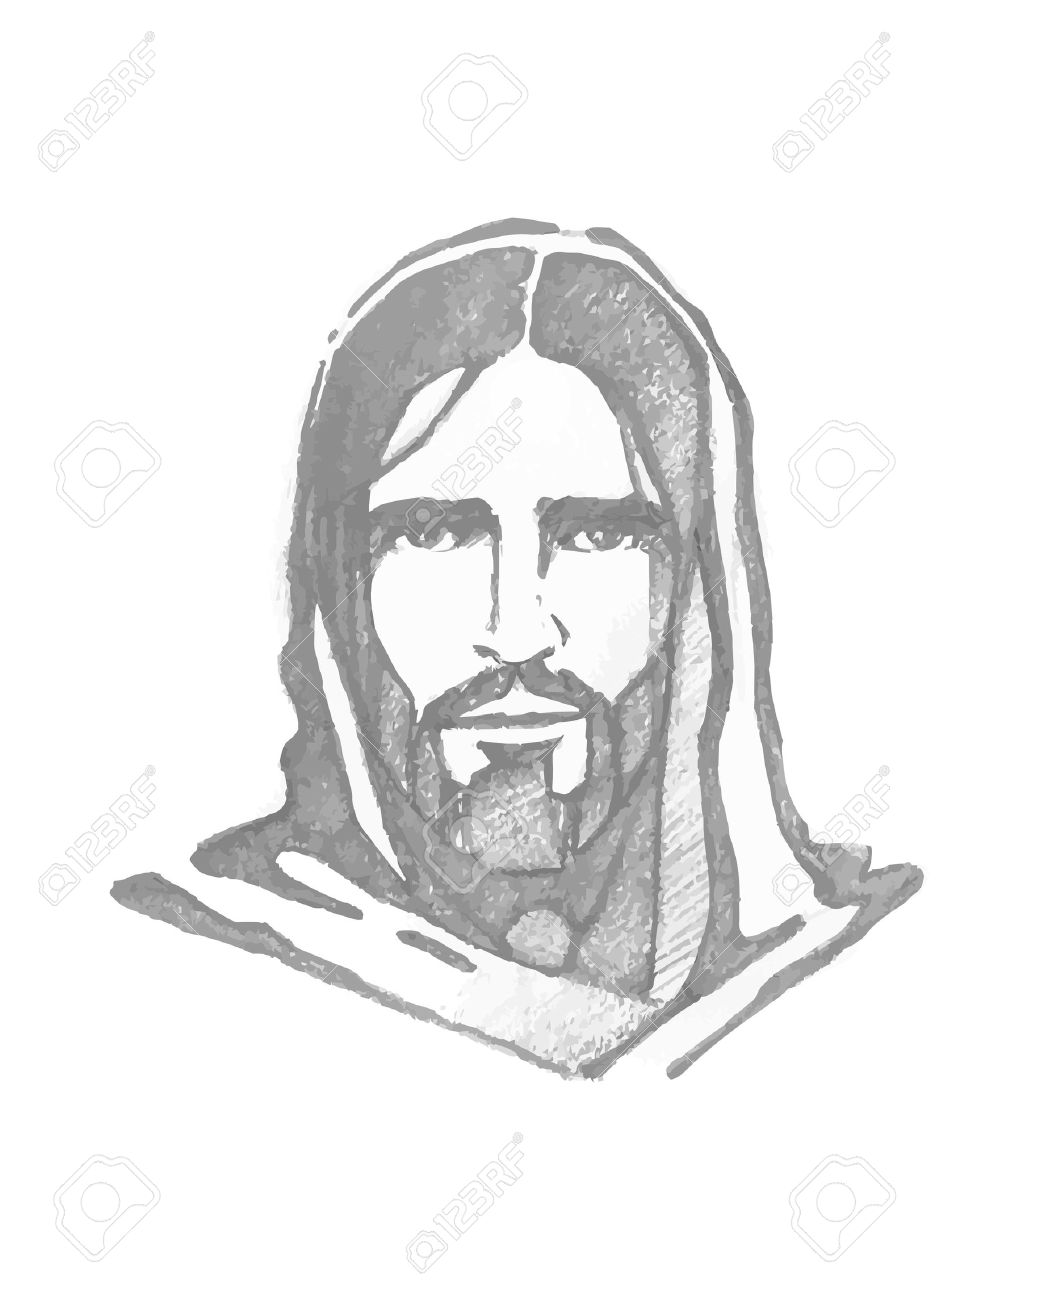 Jesus Face Outline Sketch Wiring Diagrams Electronic Timing Circuit Get Domain Pictures Getdomainvidscom Stock Photos Royalty Free Images Rh 123rf Com Male